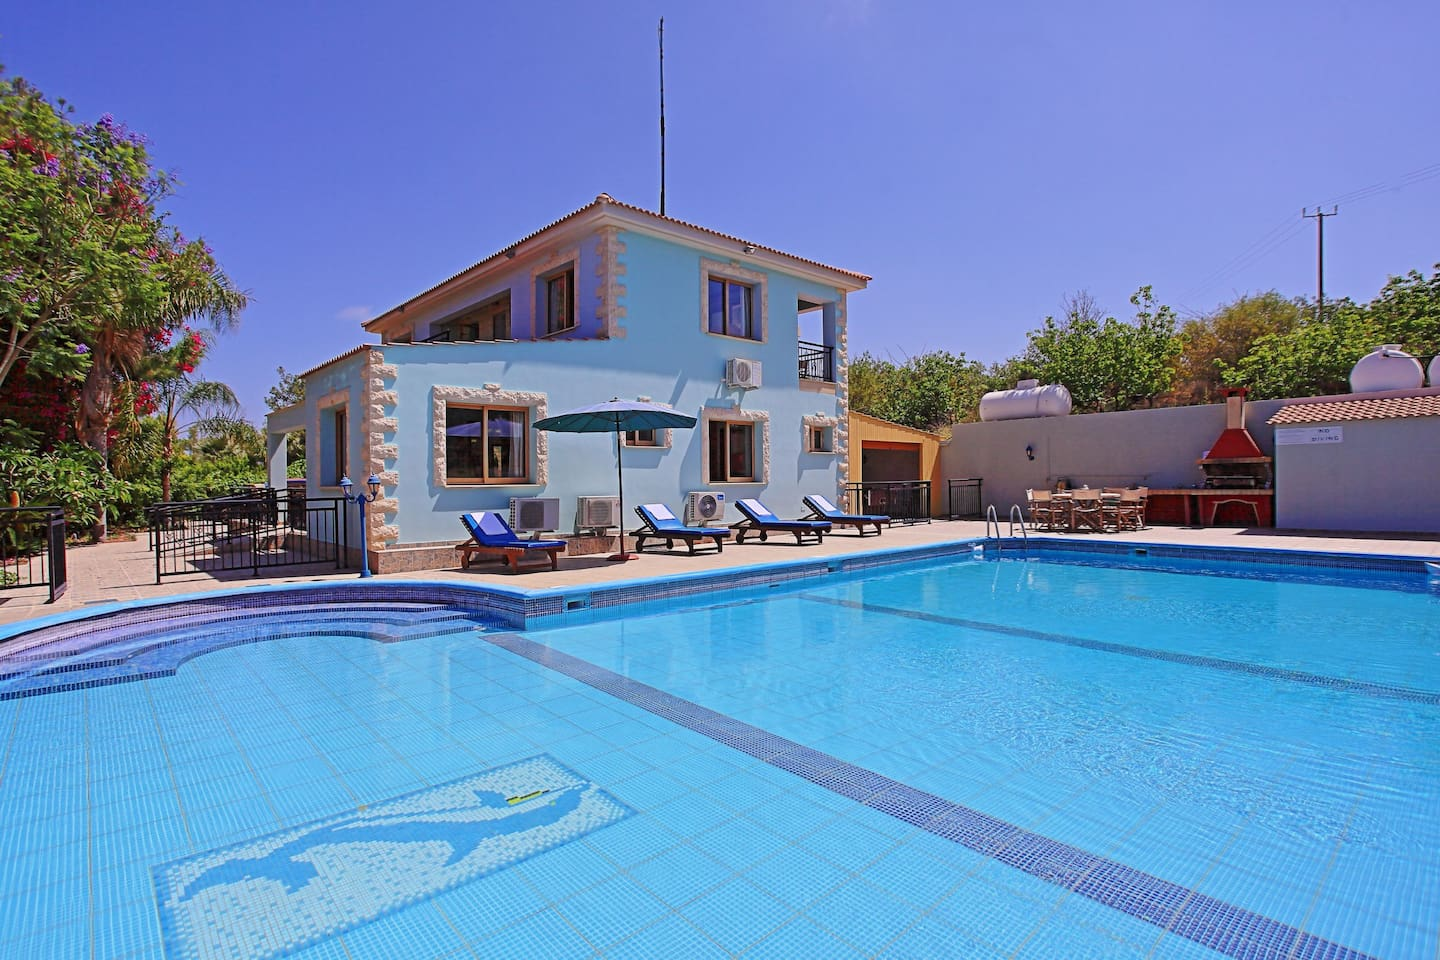 Marilena Sunset Dio: Magnificent pool area, a treat for the family